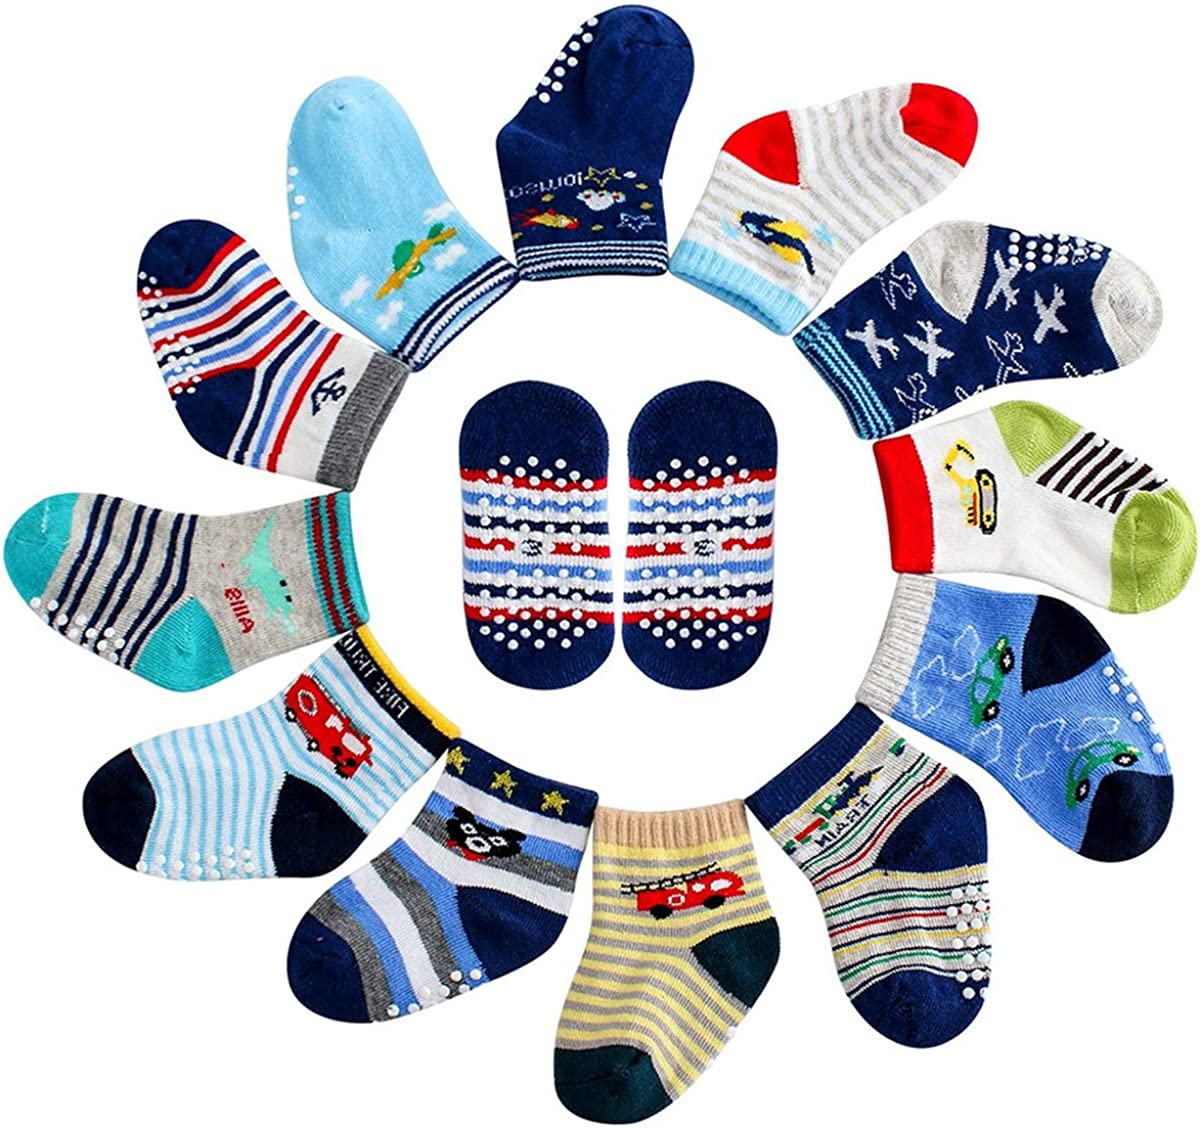 MAYBOX 12 Pairs Assorted Non-Skid Anti Slip Crew Socks With Grips For Baby Toddlers Boys Socks with Grip